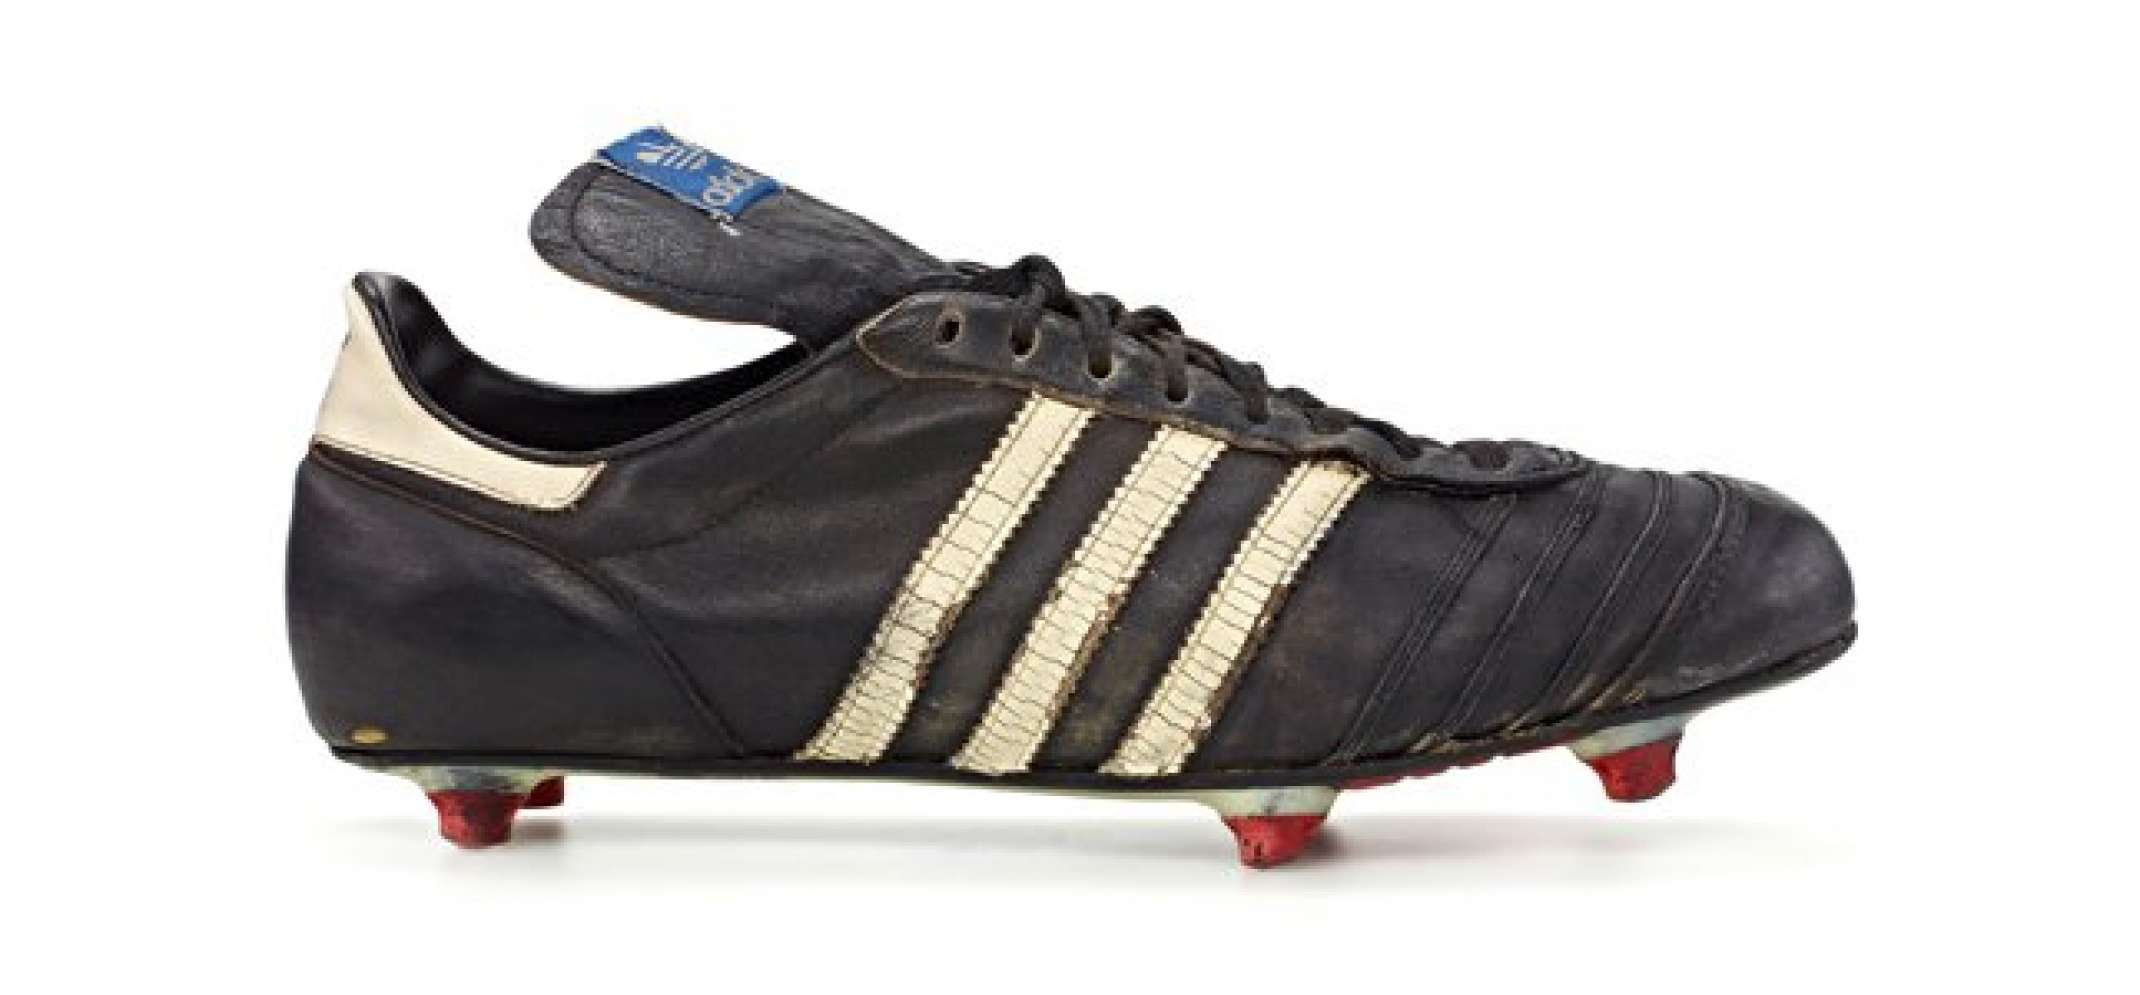 9d8bf0543 Since then, whilst football boot design has continued to be one of my  favourite shoe silhouettes (and there's no doubt that aged 10 my new boots  represented ...